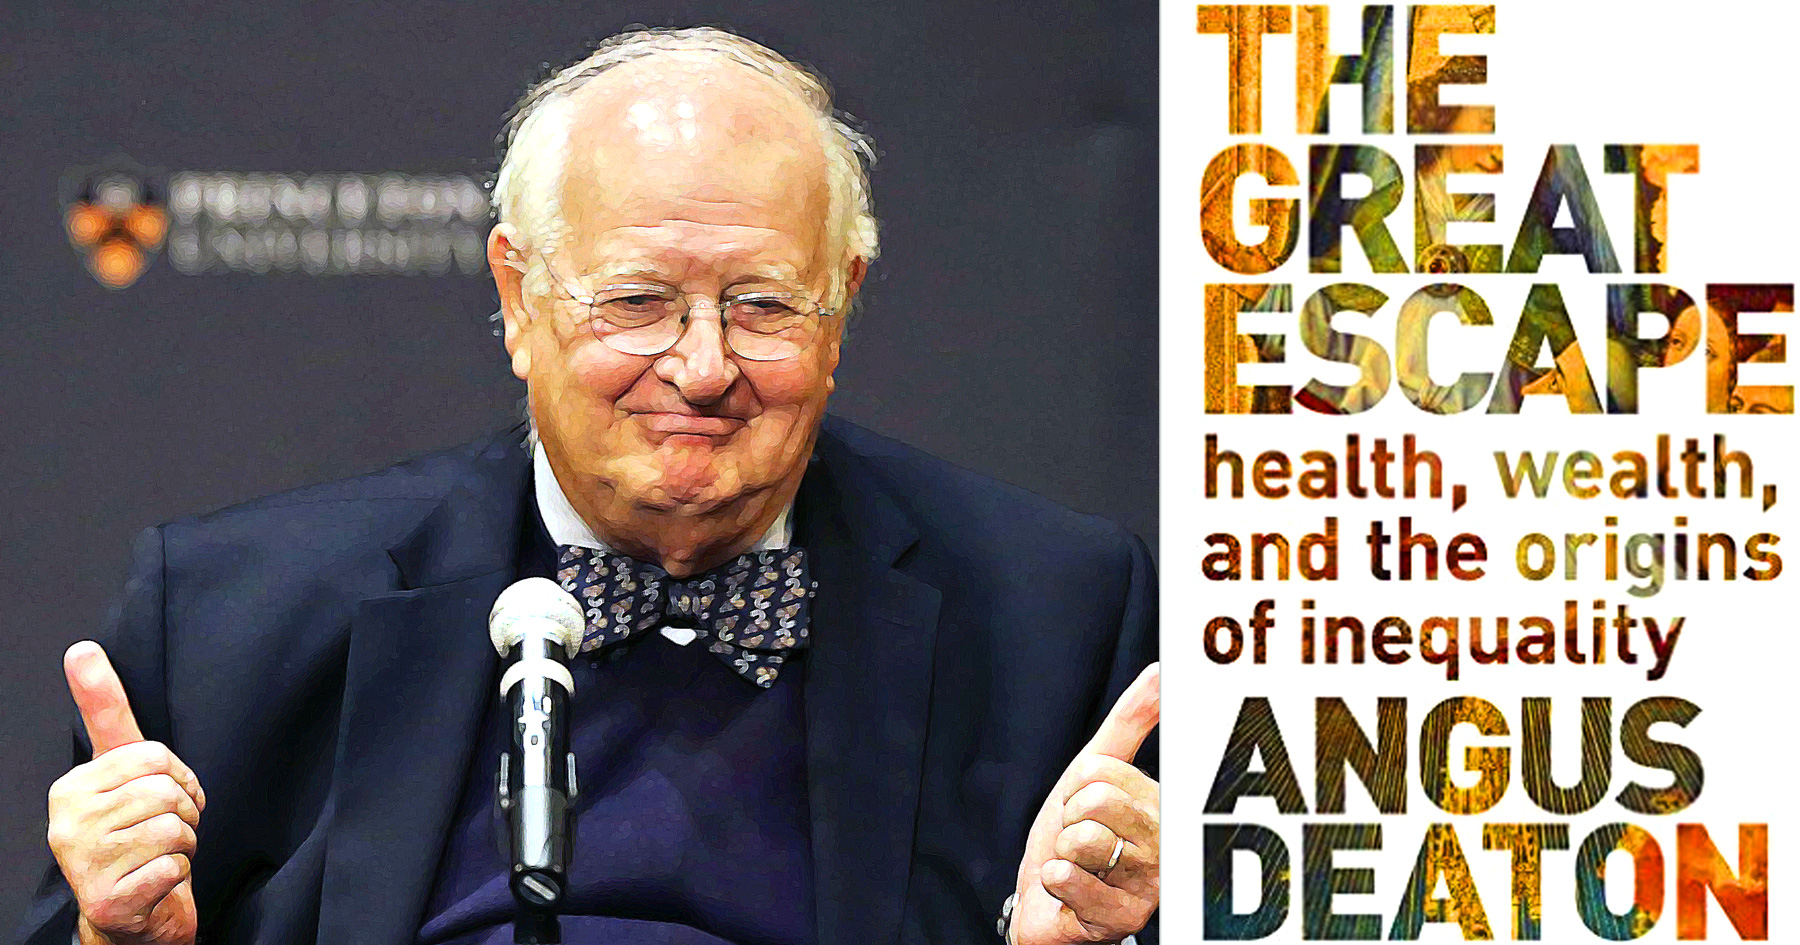 Angus Deaton, Nobel Prize, Economics, The Great Escape, Inequality, collage, photomontage, JGill, Paul Jacob, Common Sense